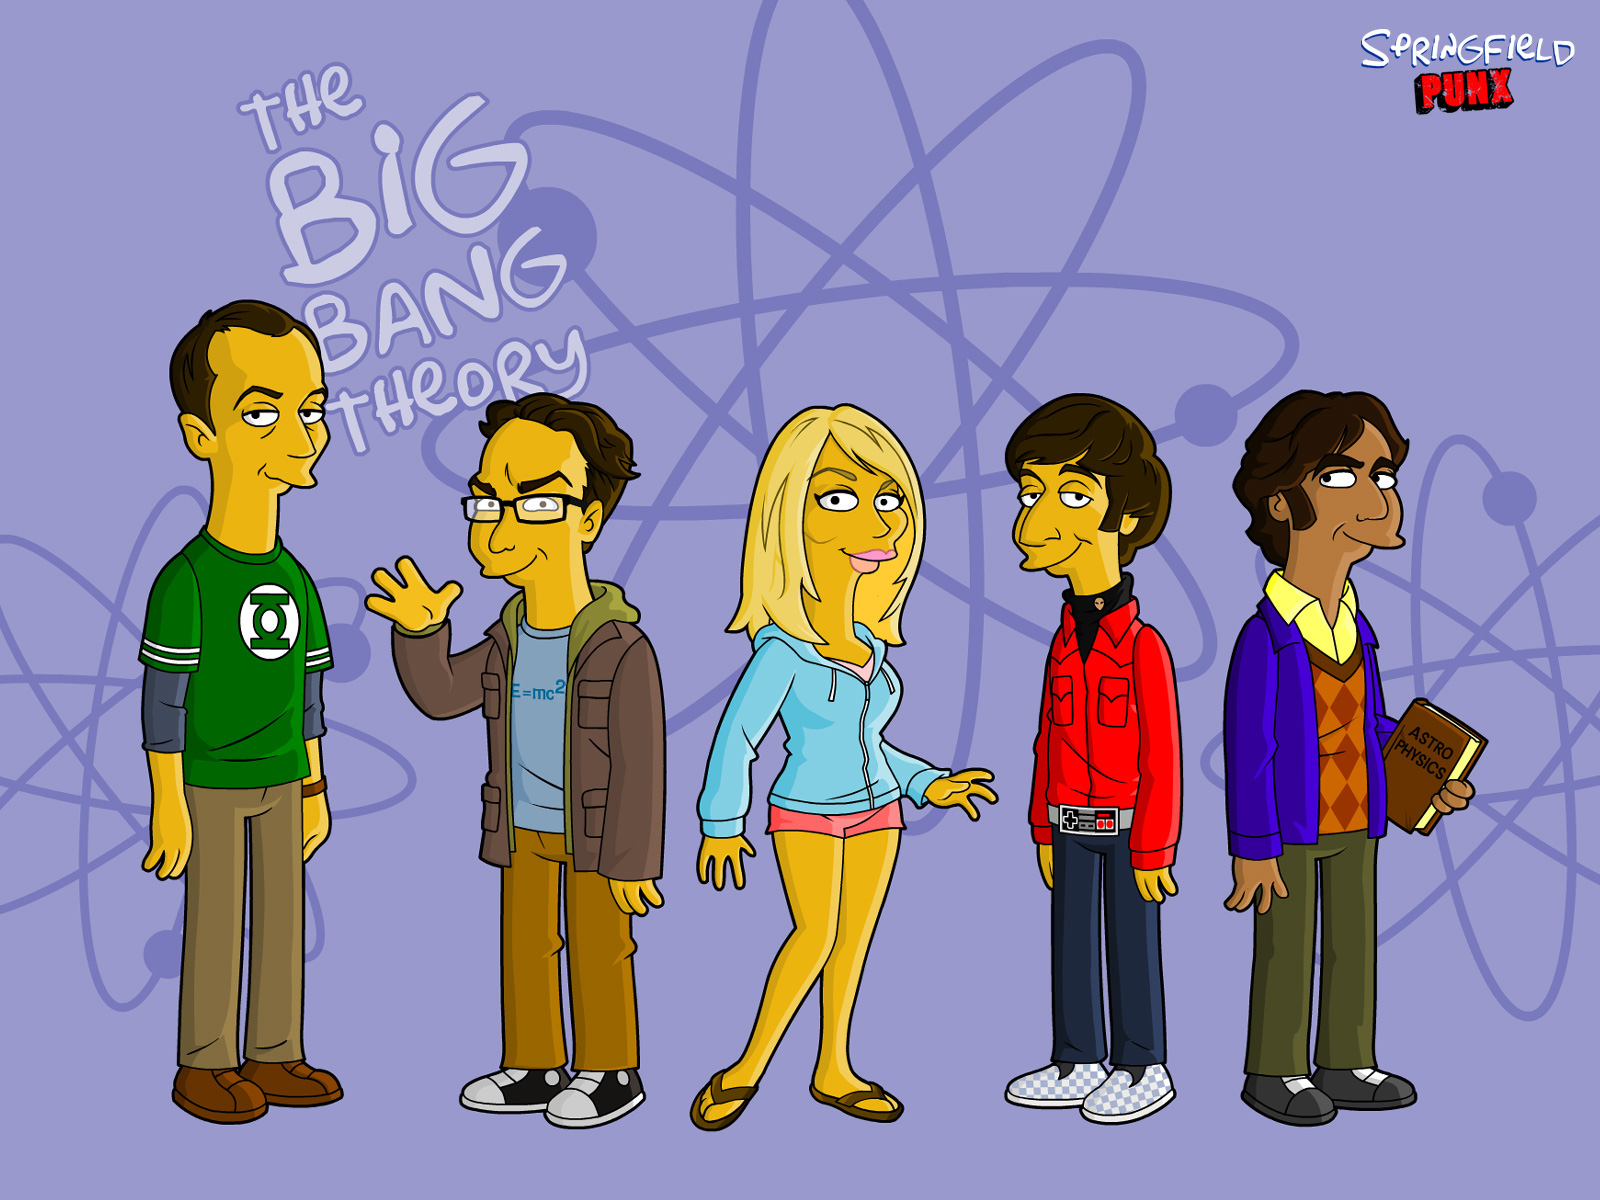 http://1.bp.blogspot.com/-OXQ-0vvPh-M/TrjwYMoHwJI/AAAAAAAAFR8/l0AeD7Tg46c/s1600/The-Big-Bang-Theory-Wallpaper-1600x1200.jpg